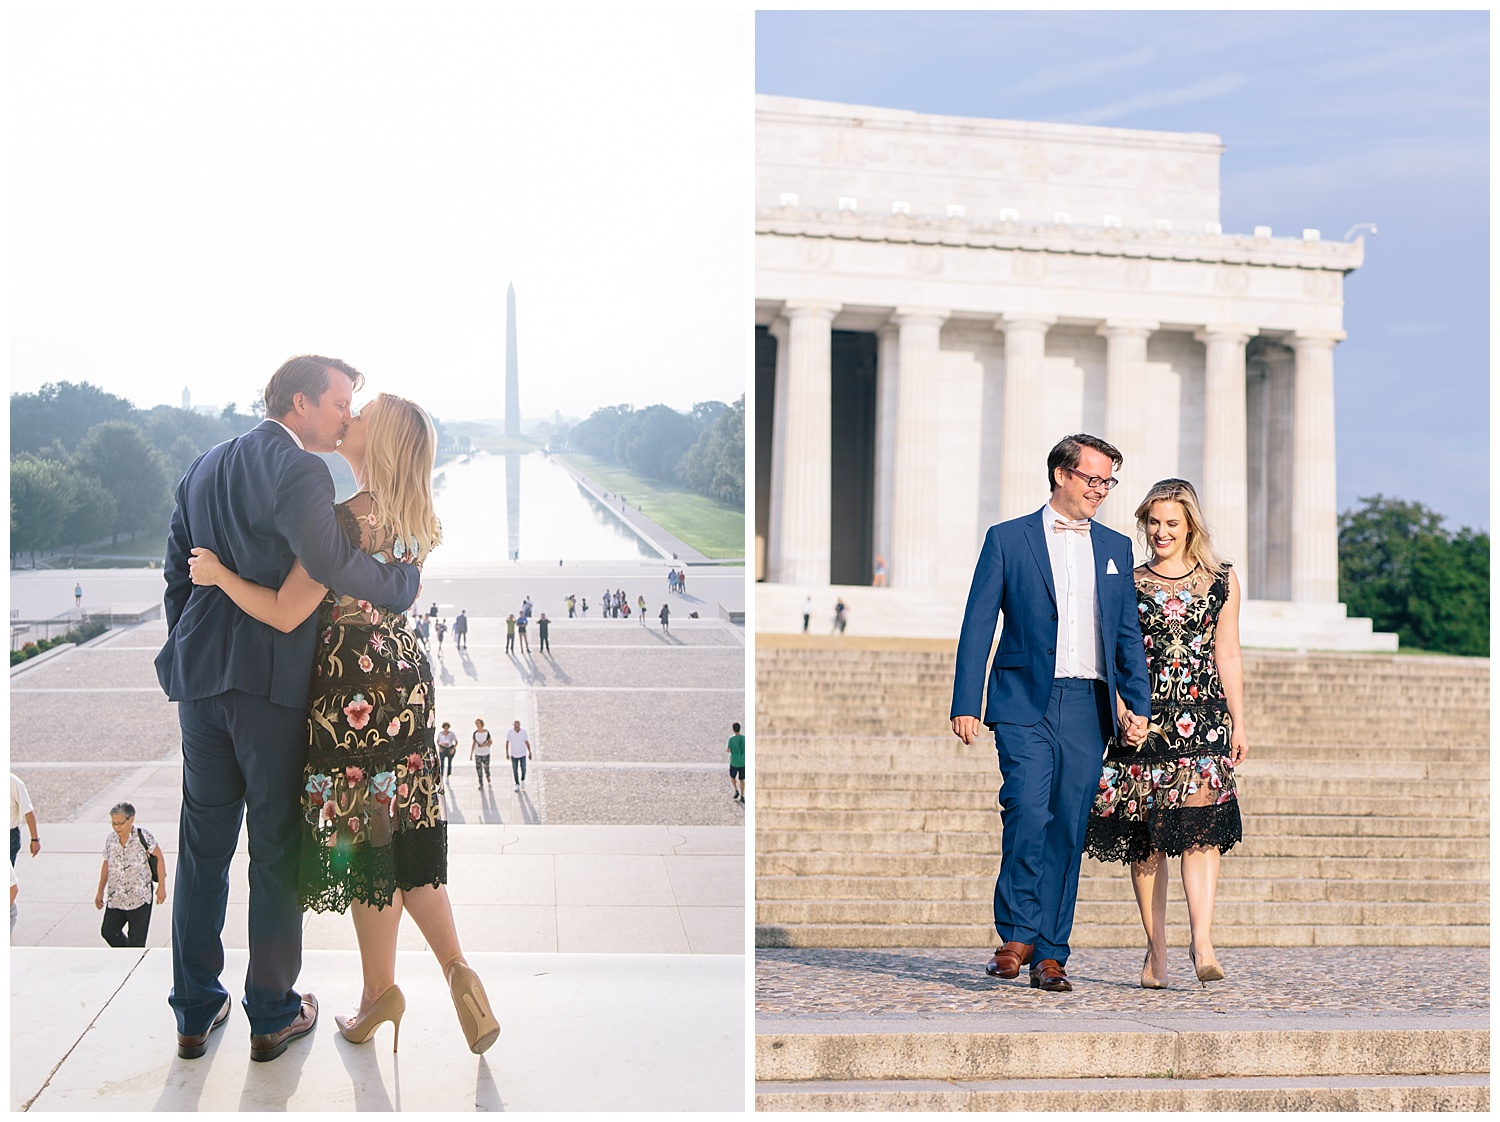 emily-belson-photography-washington-dc-engagement-emily-john-05.jpg